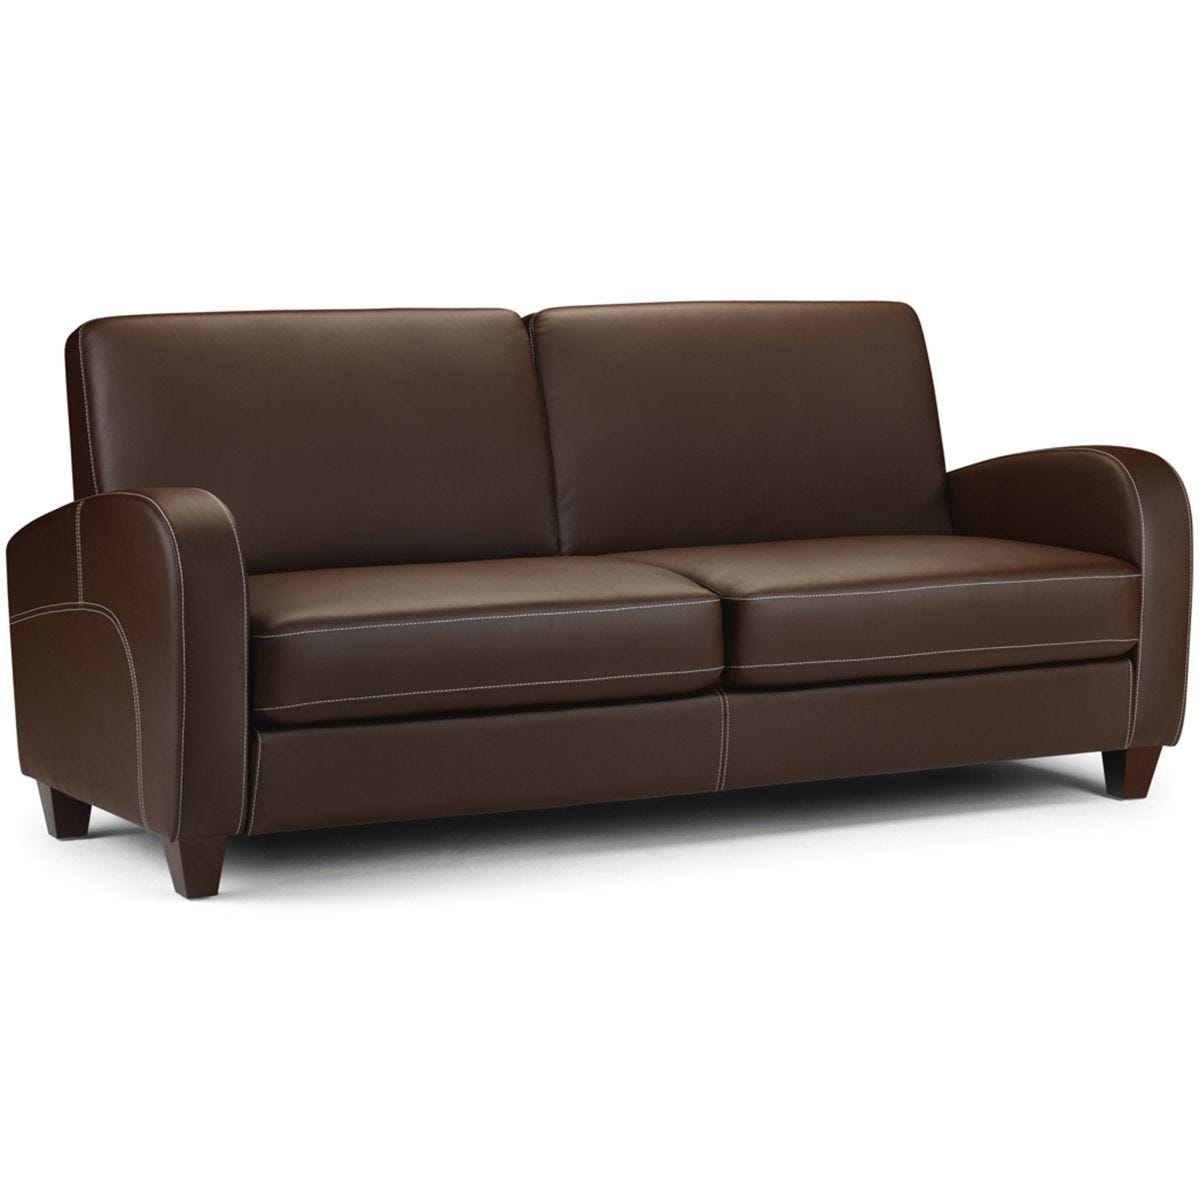 Julian Bowen Vivo 3 Seater Sofa - Chestnut Faux Leather